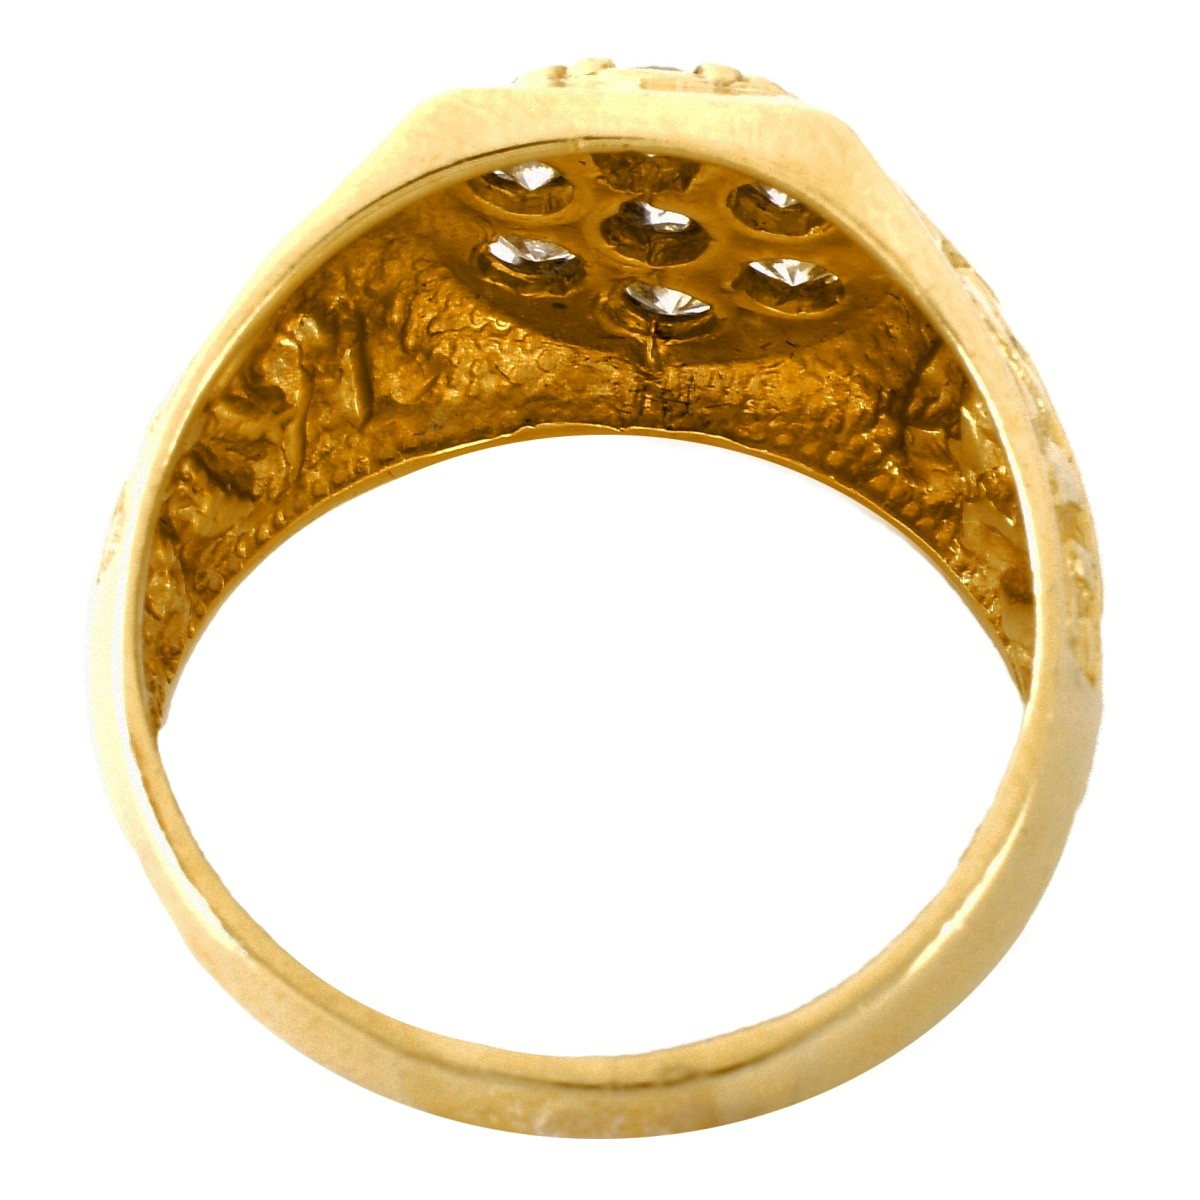 Man's Diamond and 14K Gold Ring